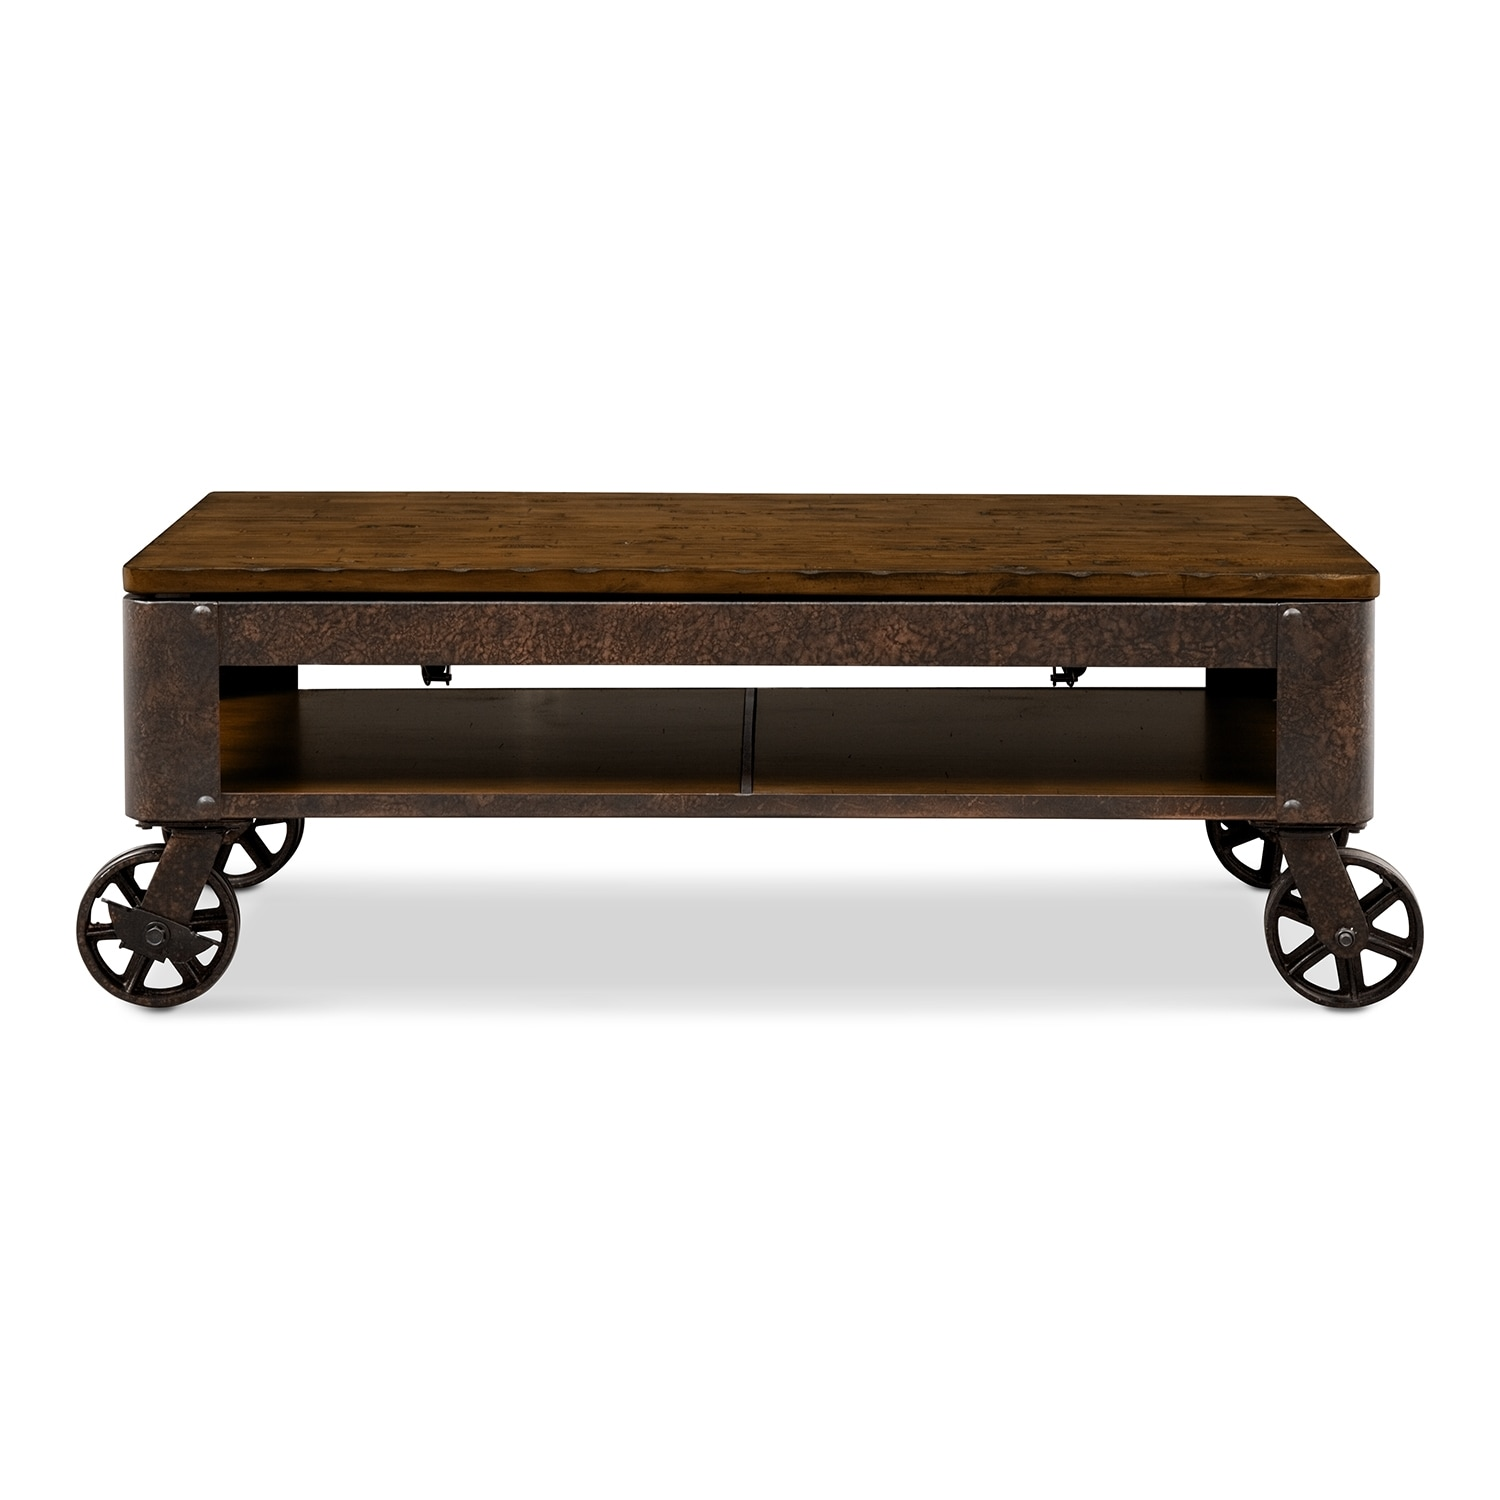 Shortline lift top cocktail table american signature furniture Lifting top coffee table